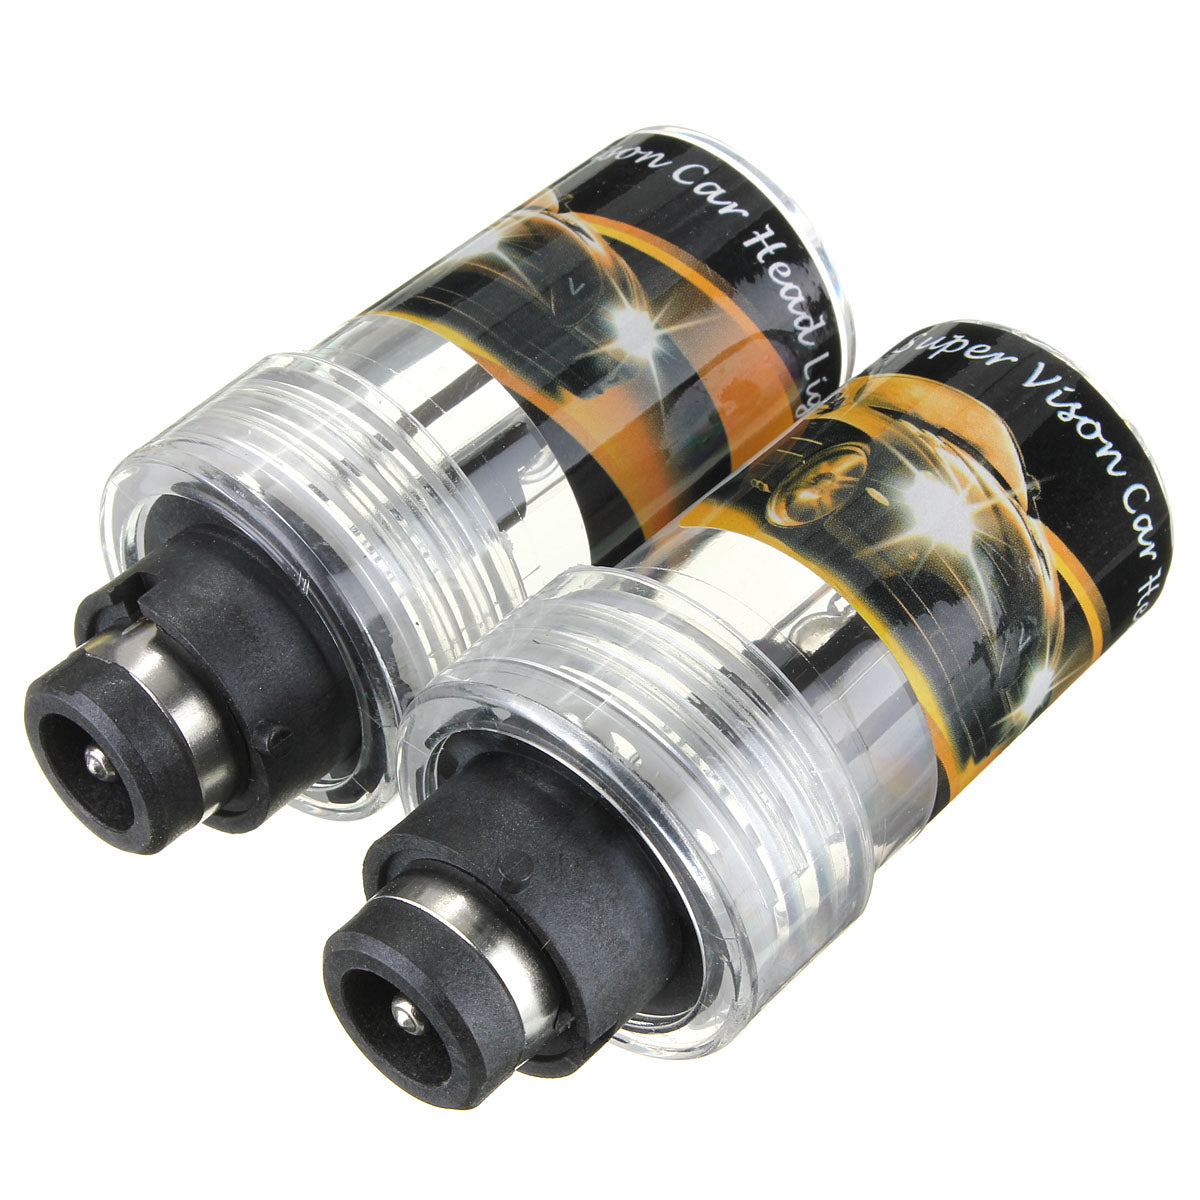 Pair 35W Car D2R HID Xenon Headlights Lamp Bulbs 4300K/5000K/6000K/8000K/12000K DC 12V